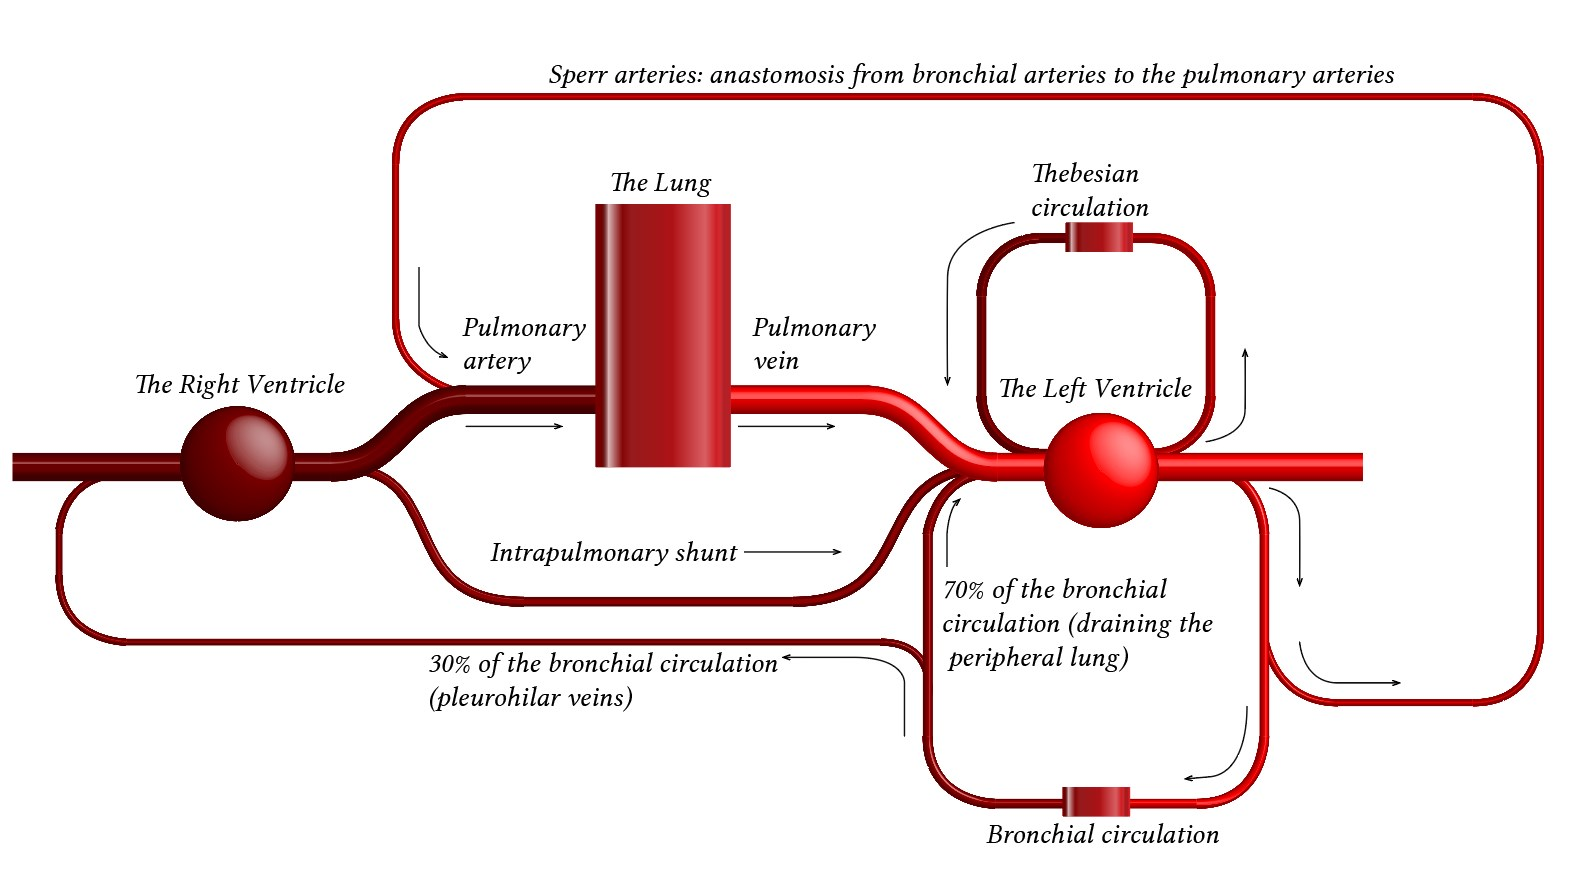 tube-like map of the pulmonary circulation